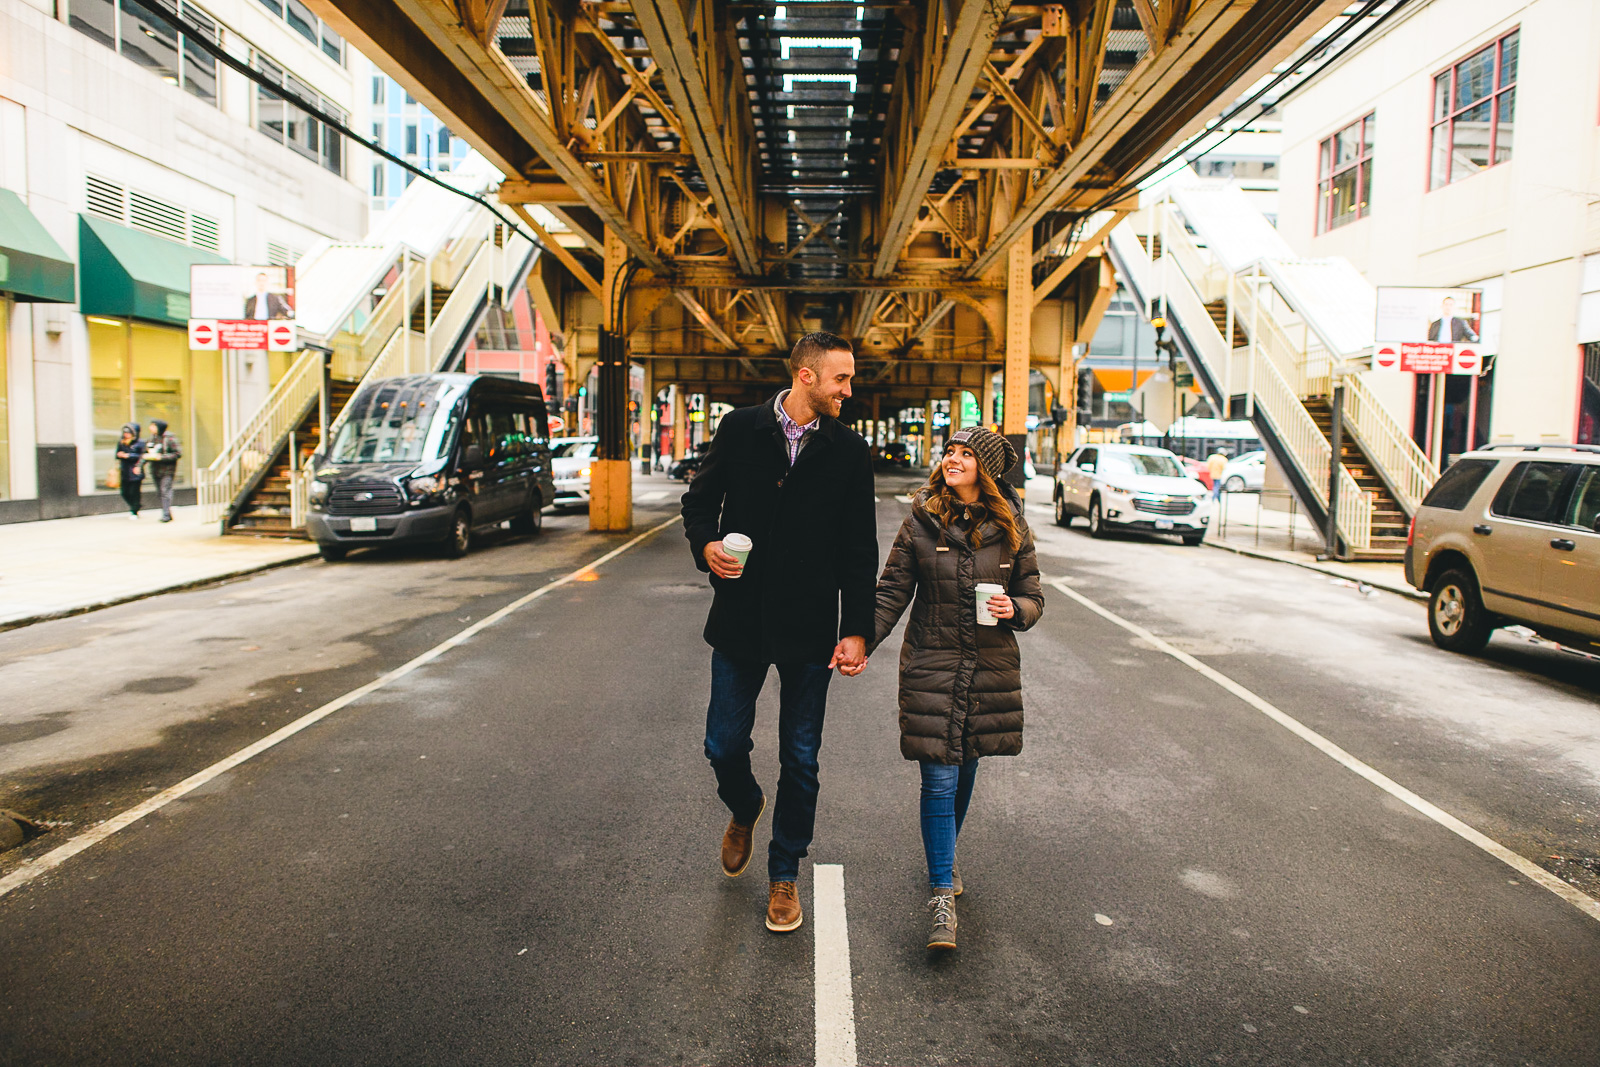 22 engagement photos under the el in chicago - Chicago Marriage Proposal // Mark + Jacklyn